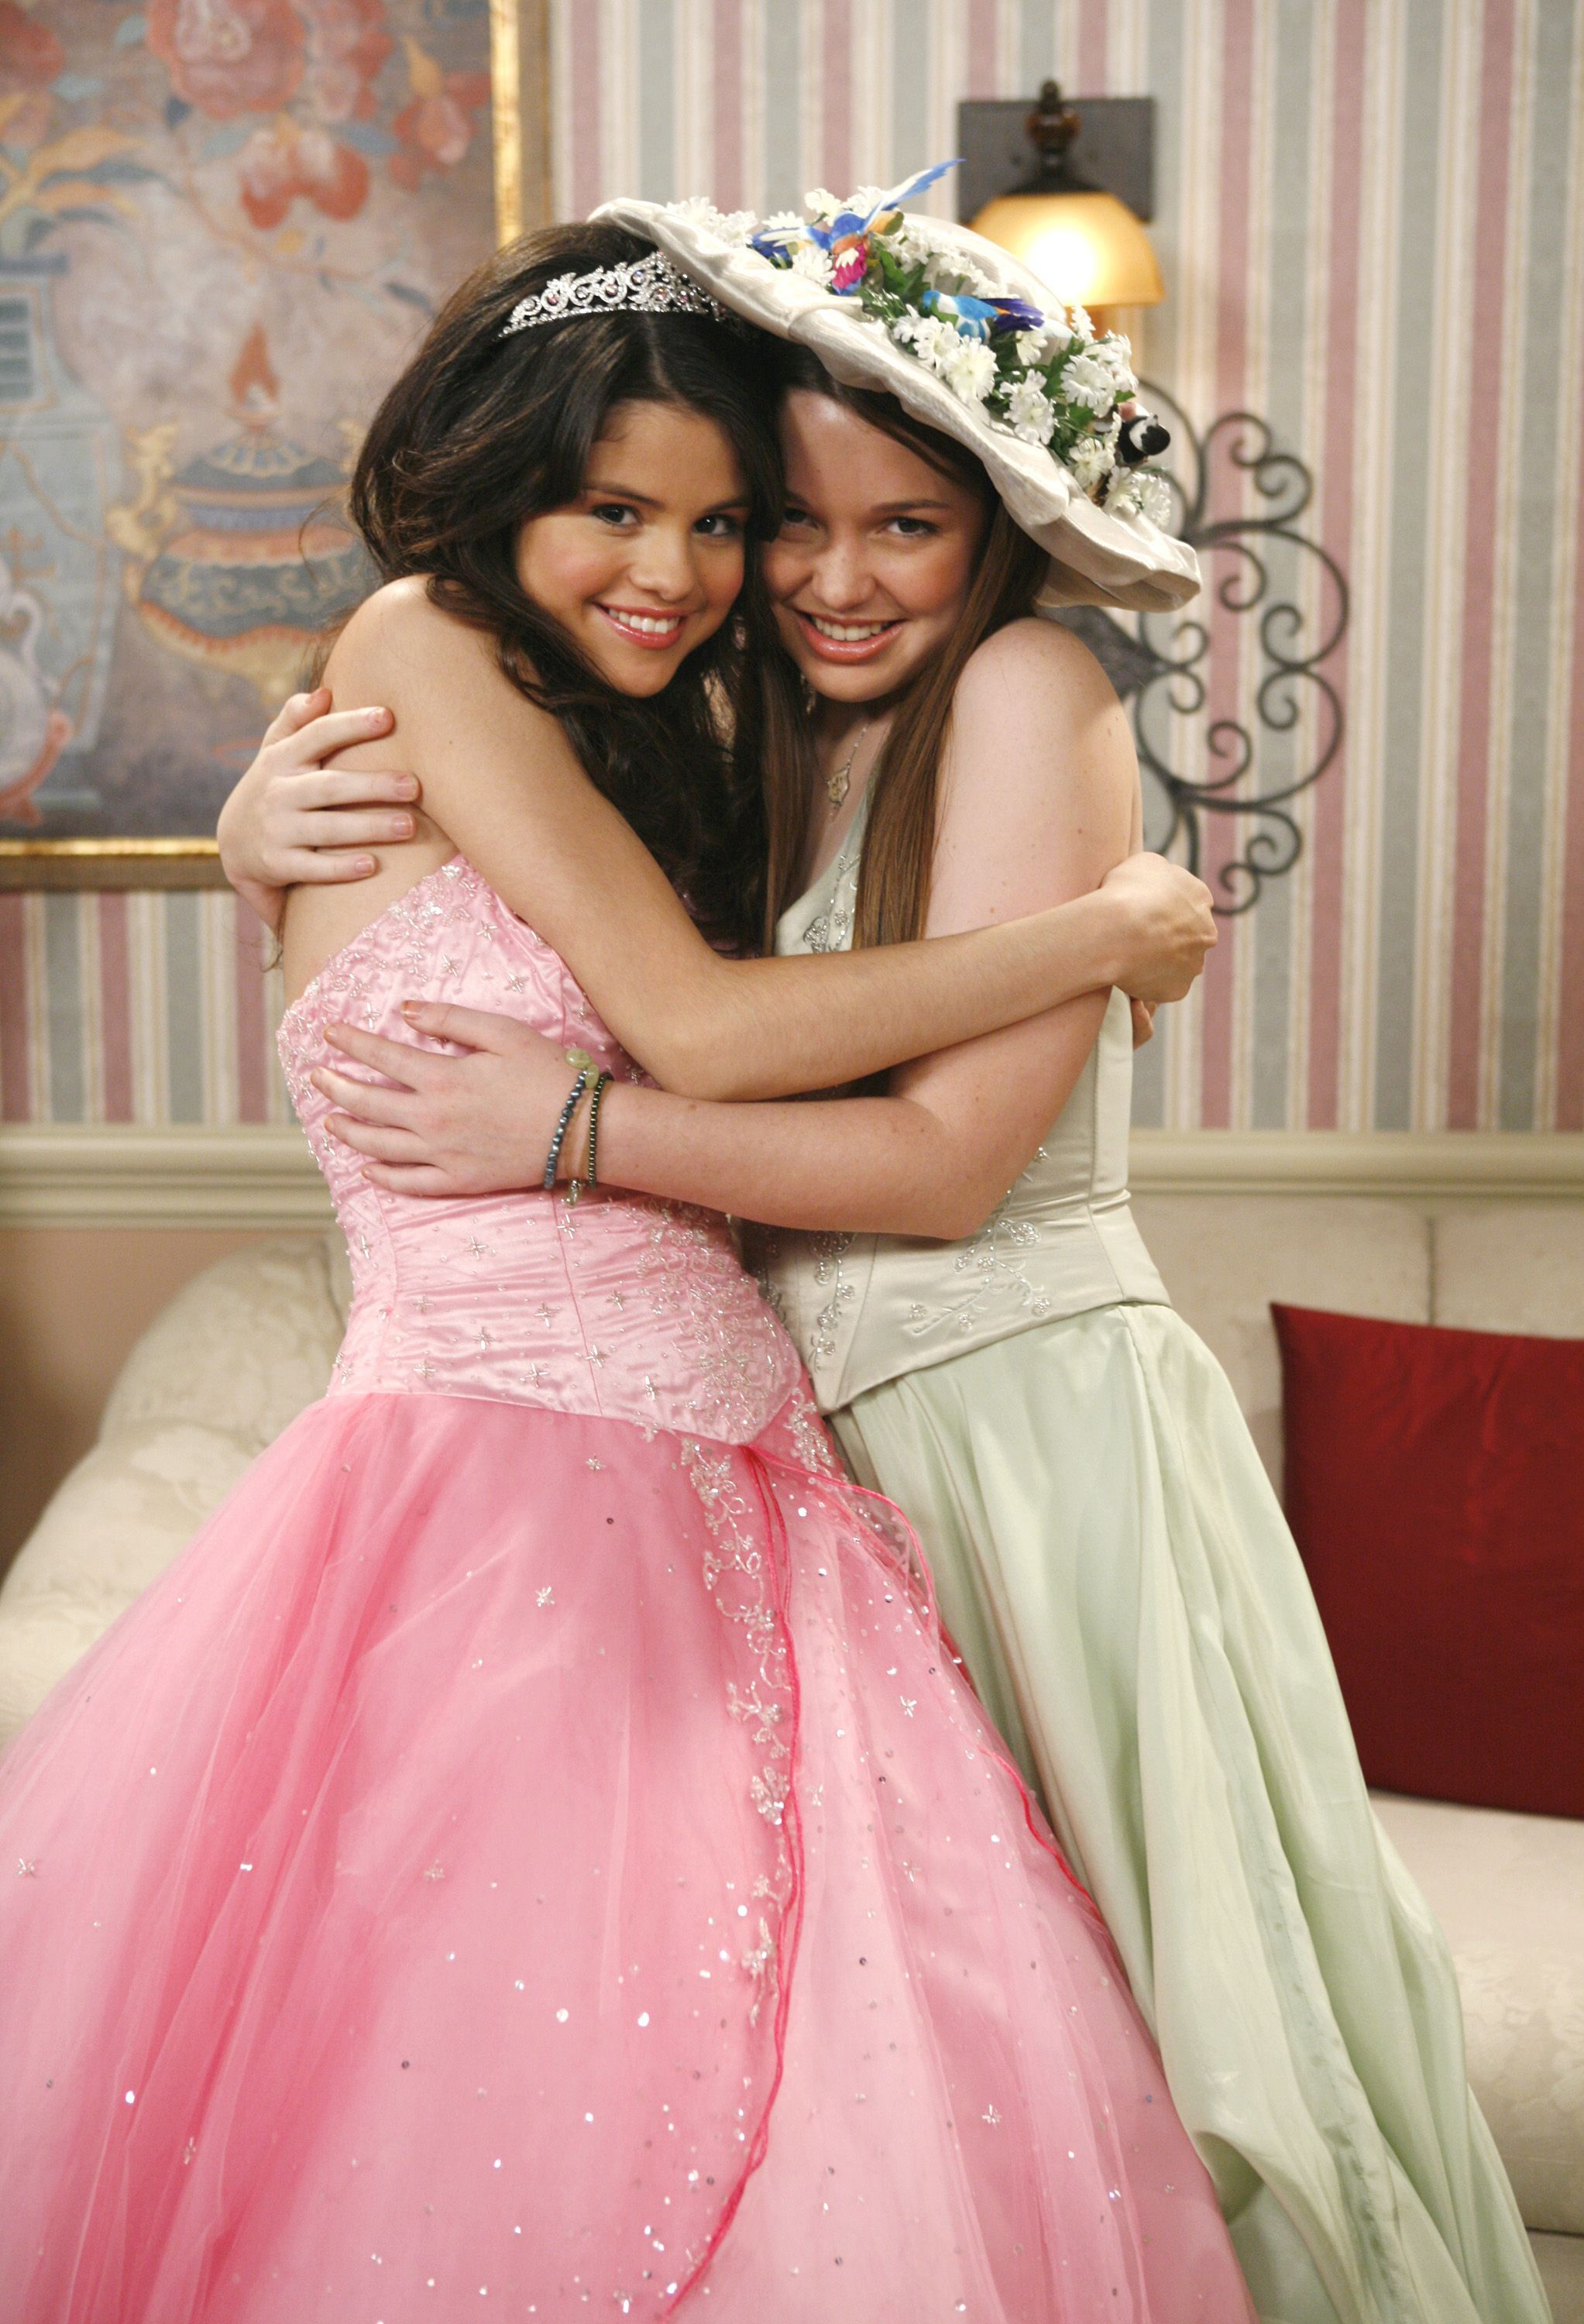 Selena Gomez as Alex Russo in Wizards Of Waverly Place. (Selena Gomez on the set of a Wizards Of Waverly Place episode.)